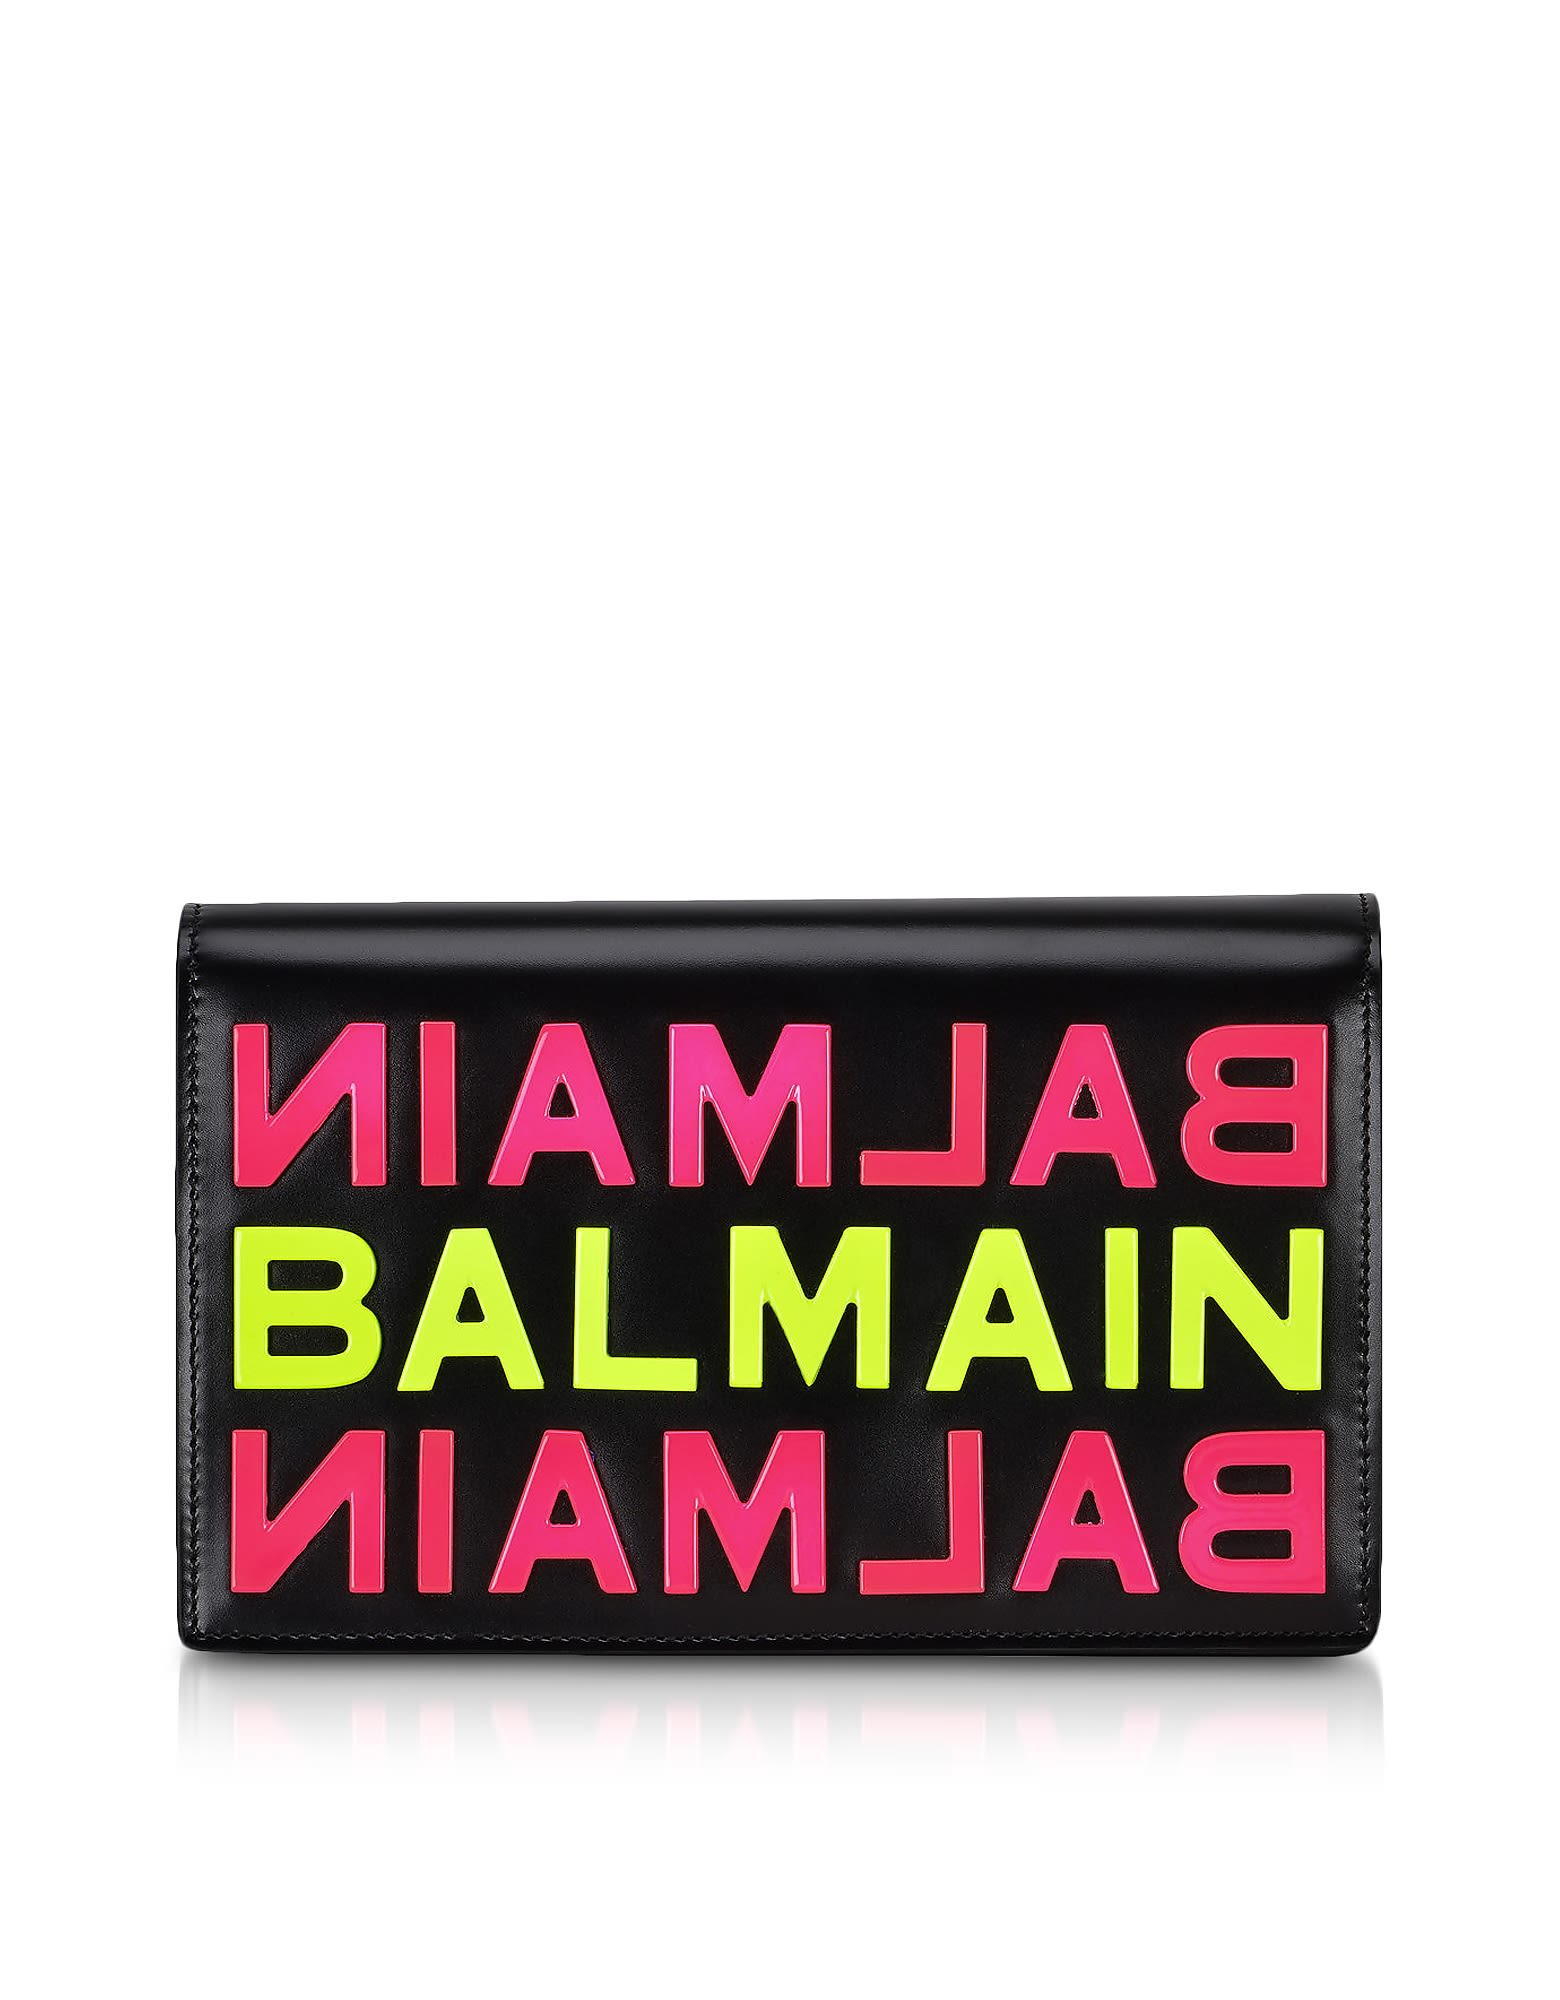 Balmain Black Smooth Leather Clutch W/neon Metallic Logo